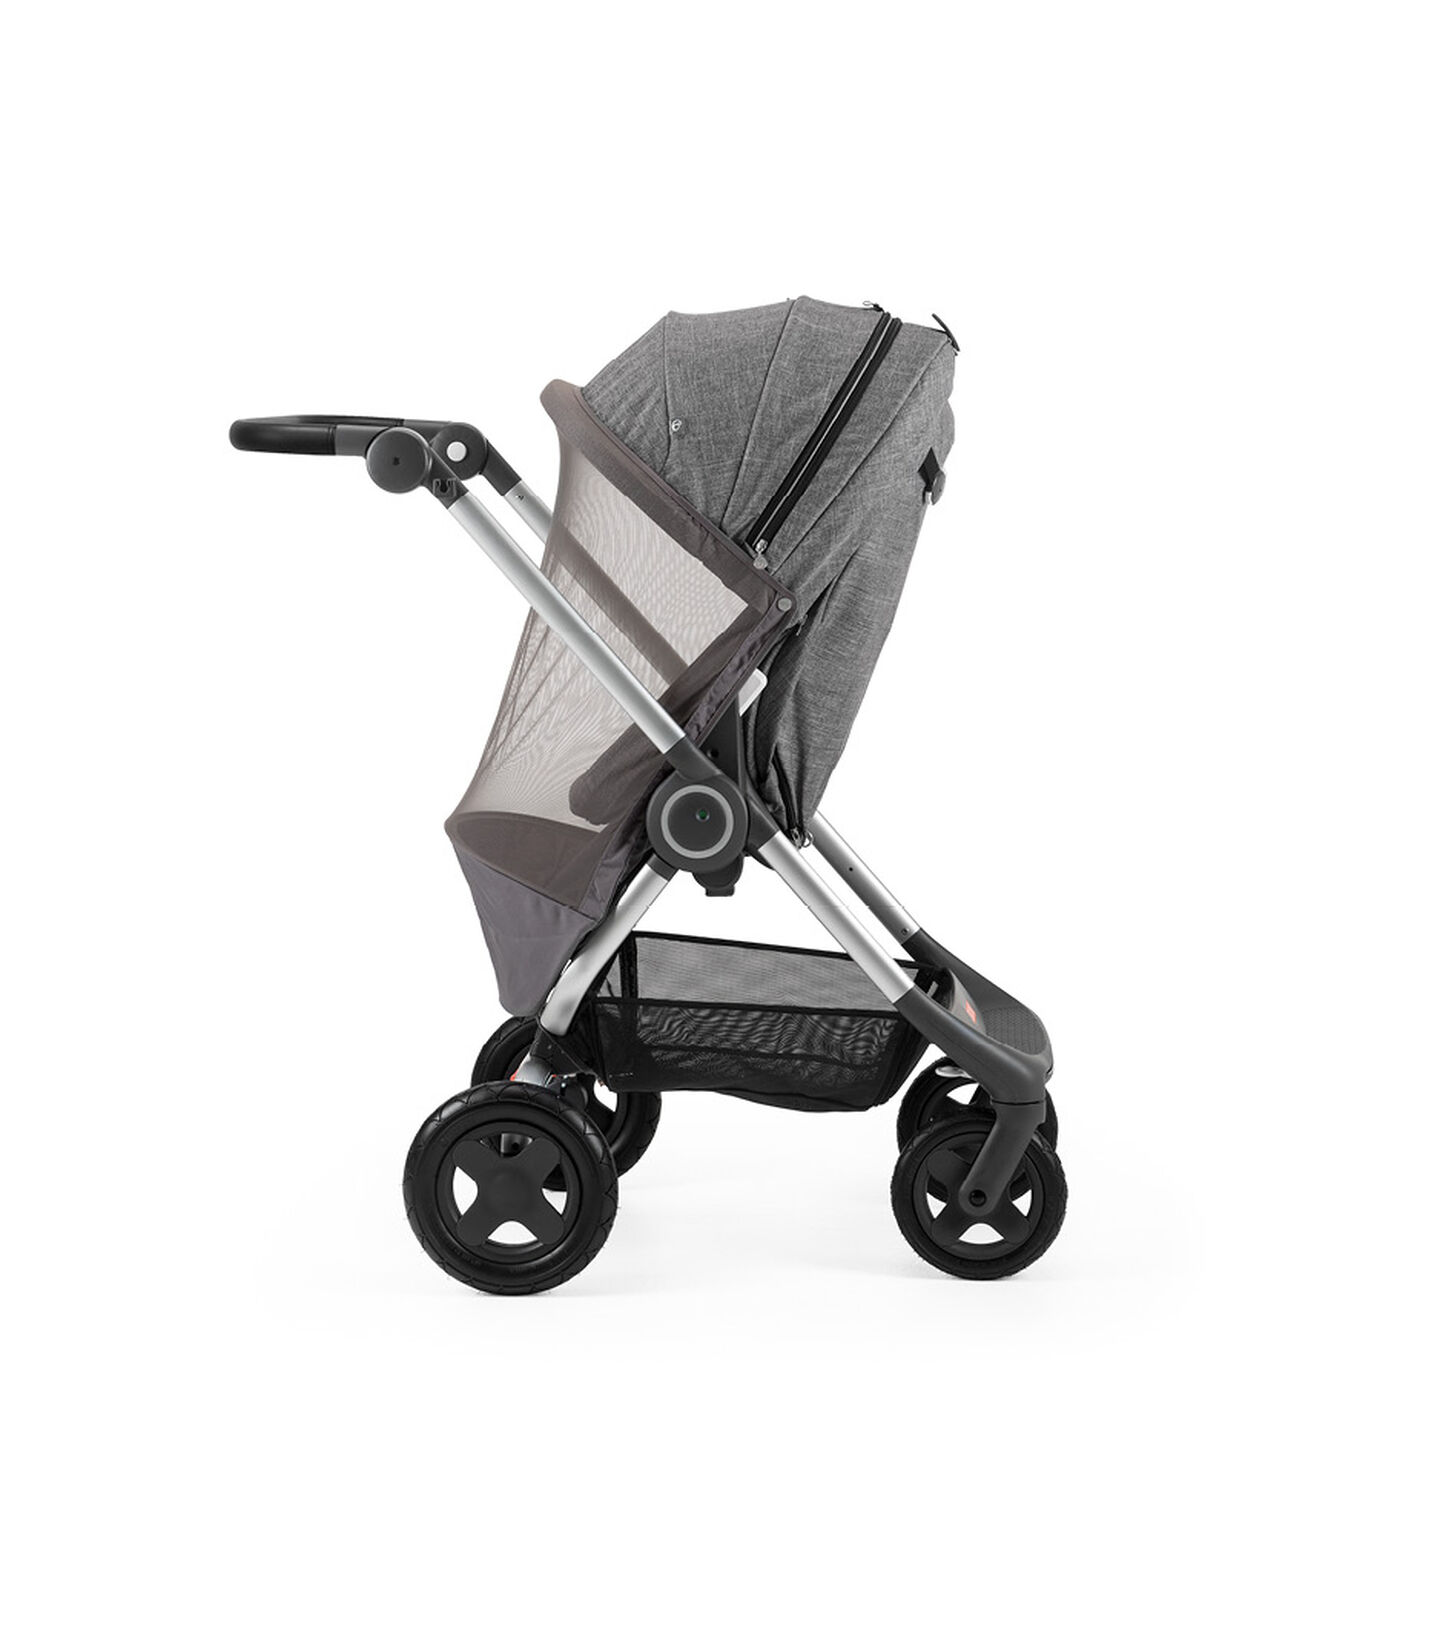 Stokke® Scoot™ Grijs anti-insectennet, , mainview view 2